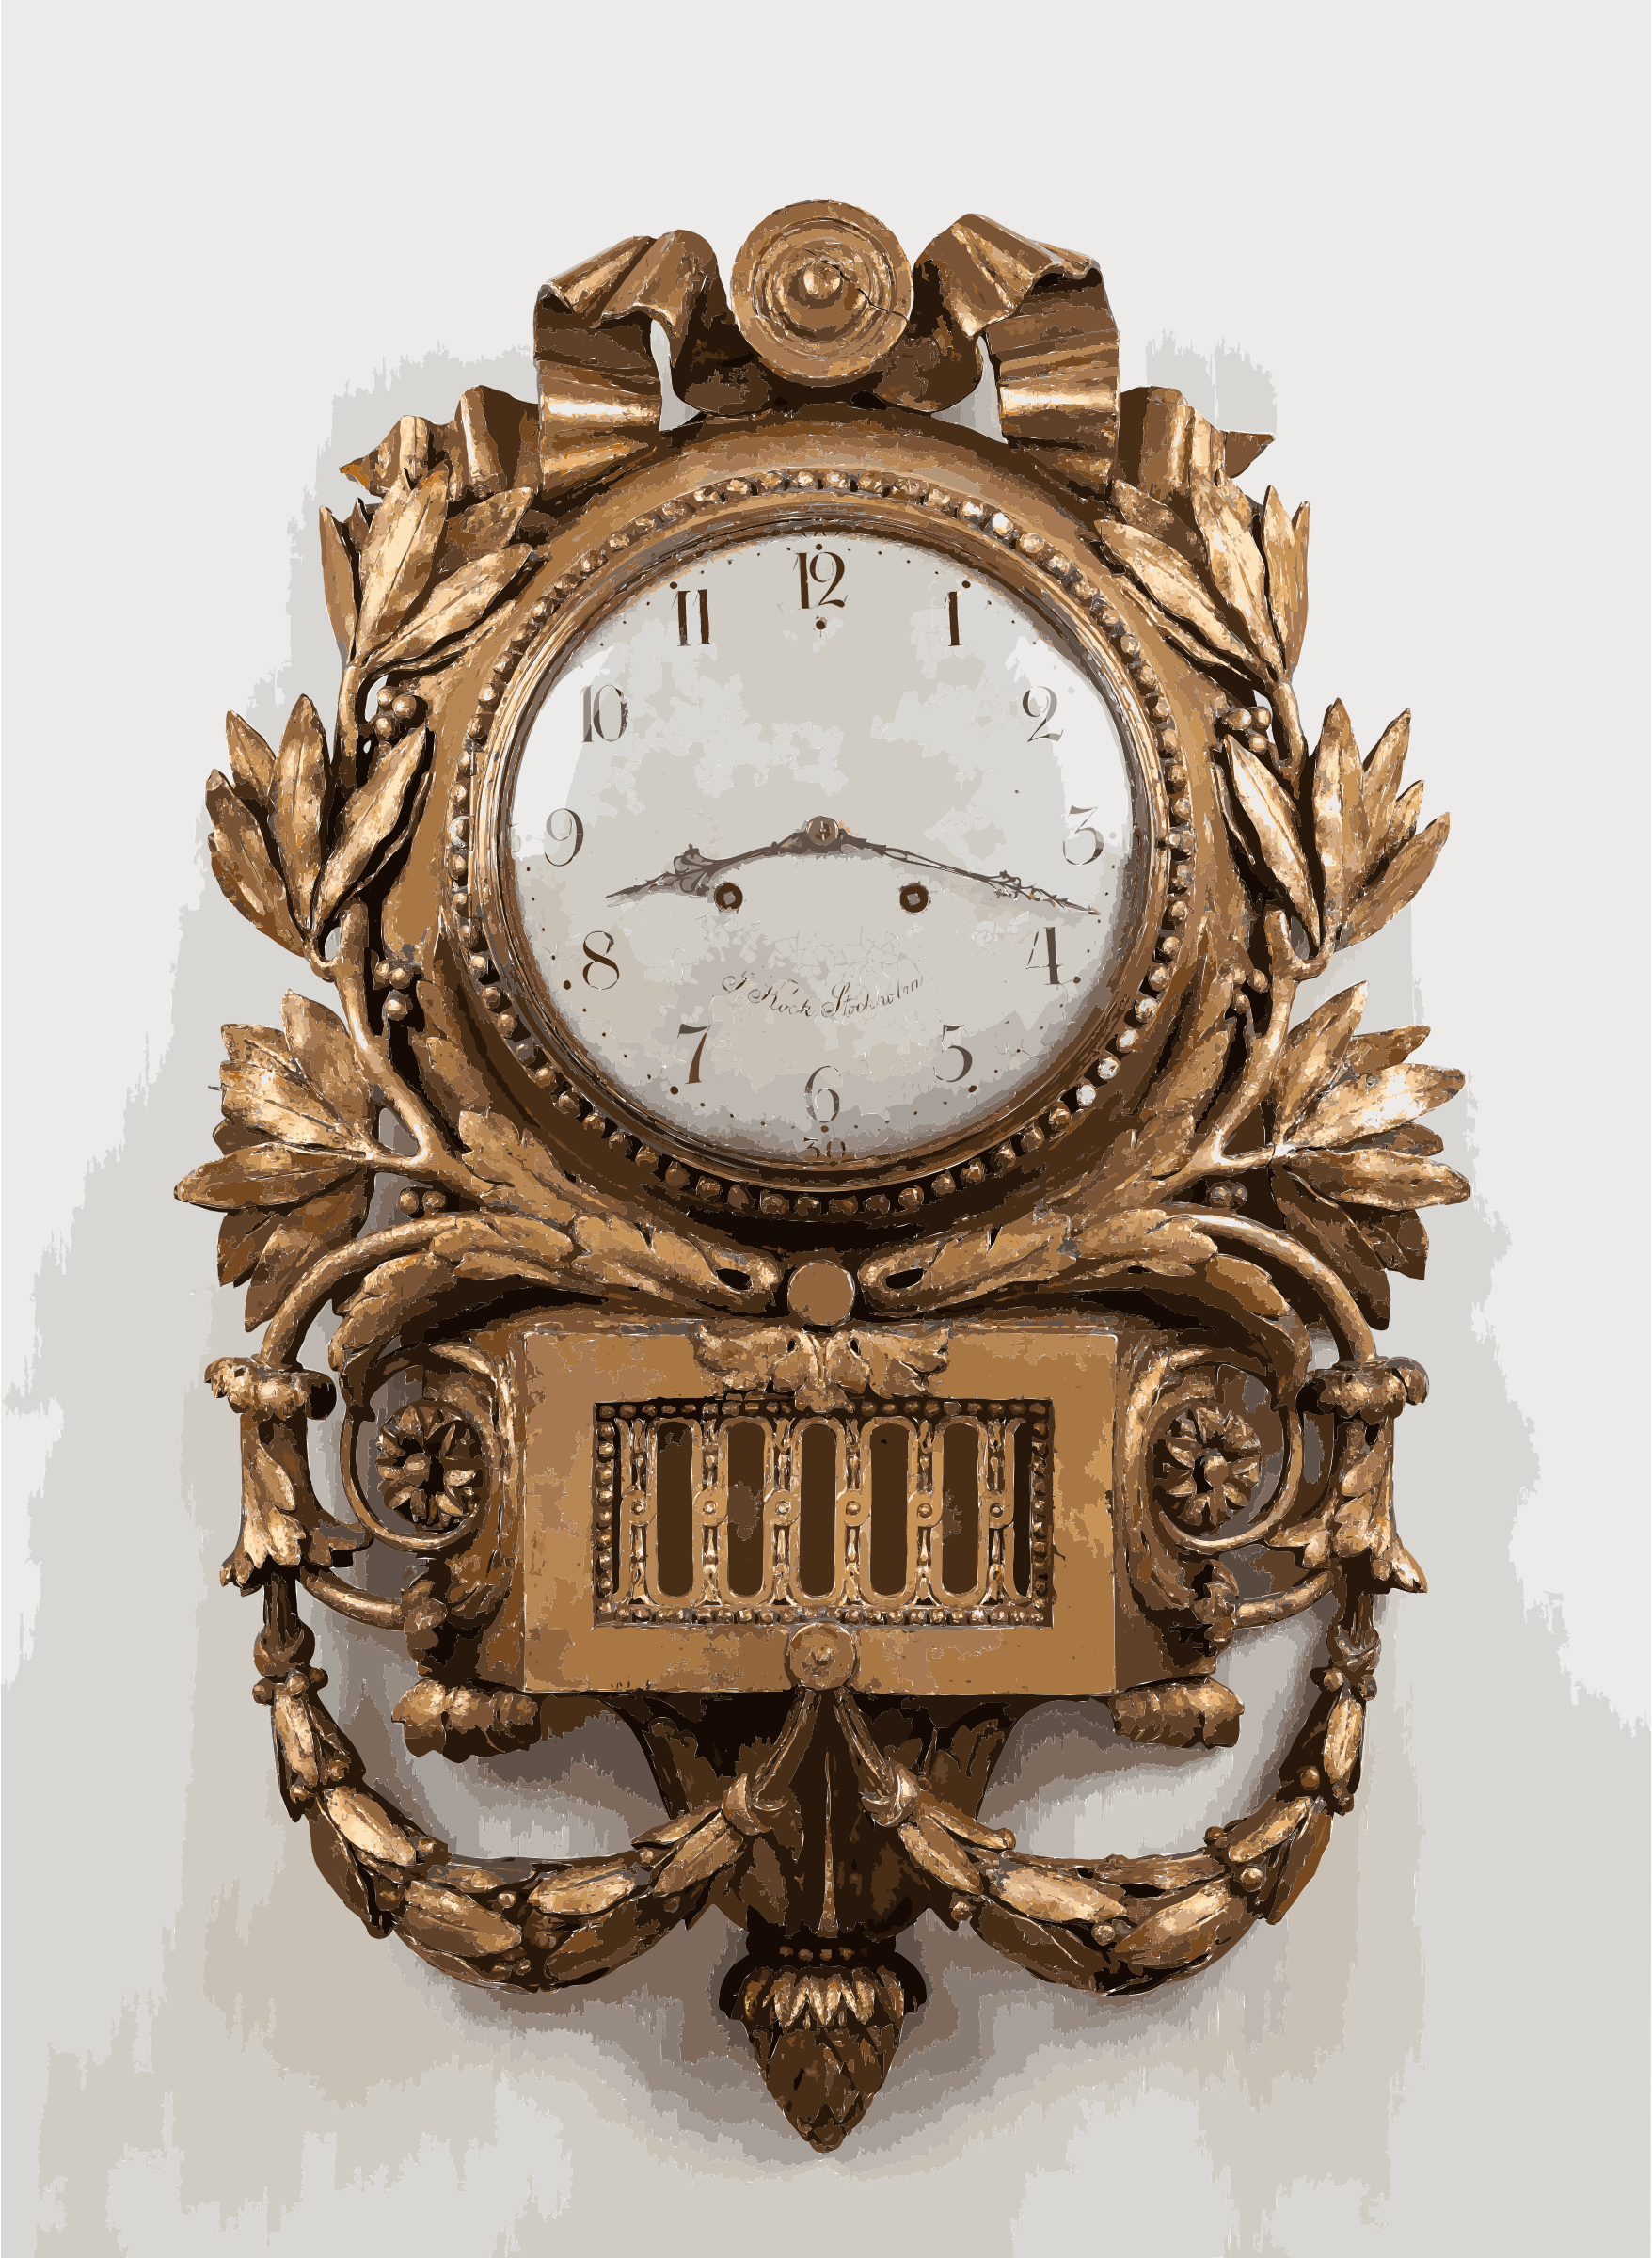 Pendulum clock by Jacob Kock, antique furniture photography, IMG 0931 edit by 5ned0l+2rizup9y4agd8